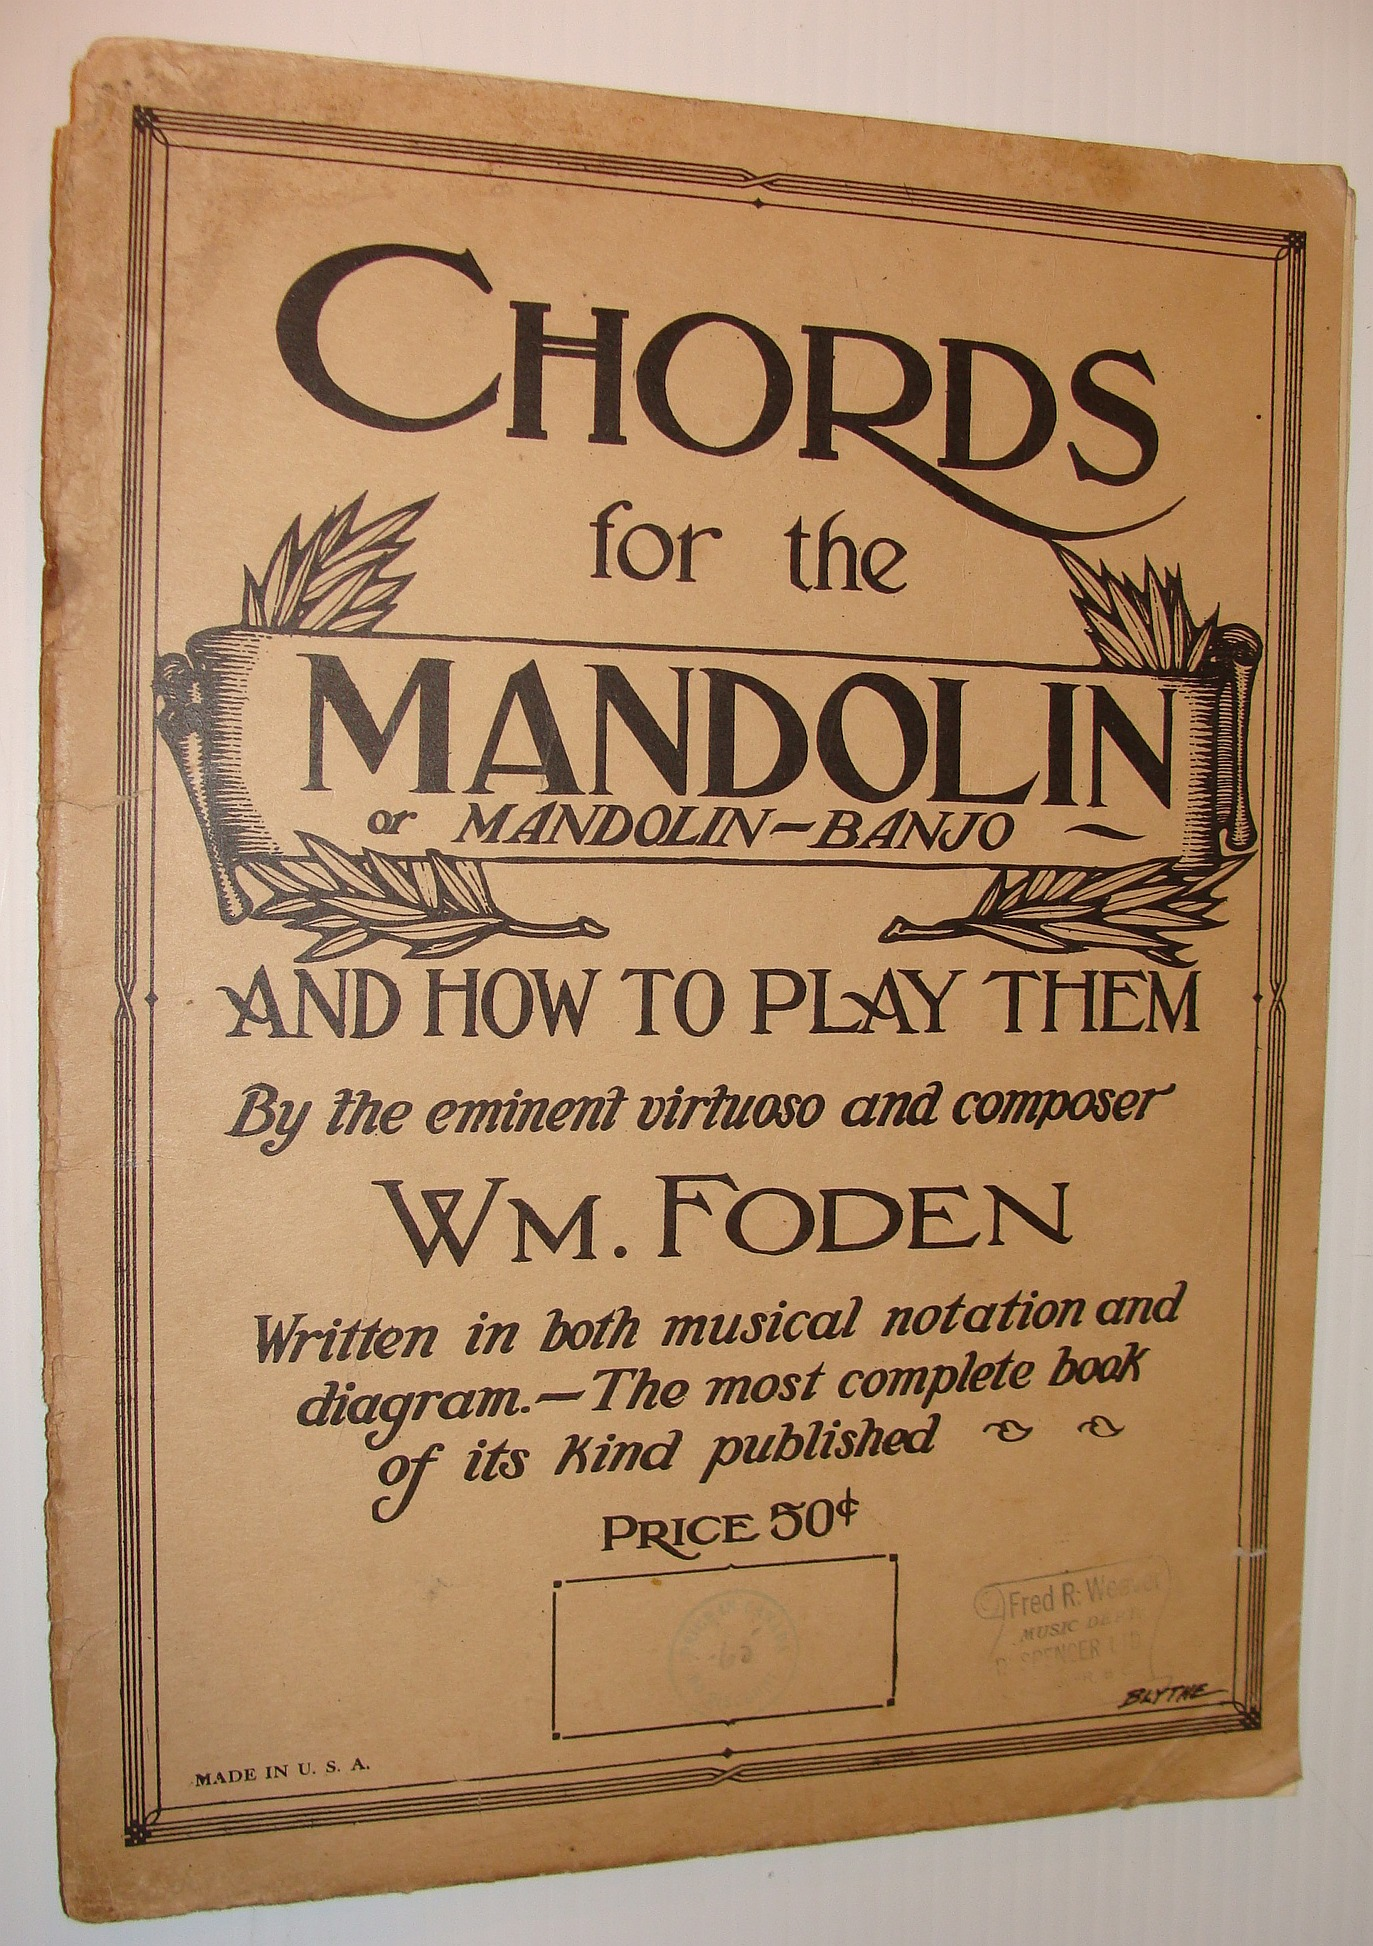 Image for Chords for the Mandolin or Mandolin-Banjo and How to Play Them